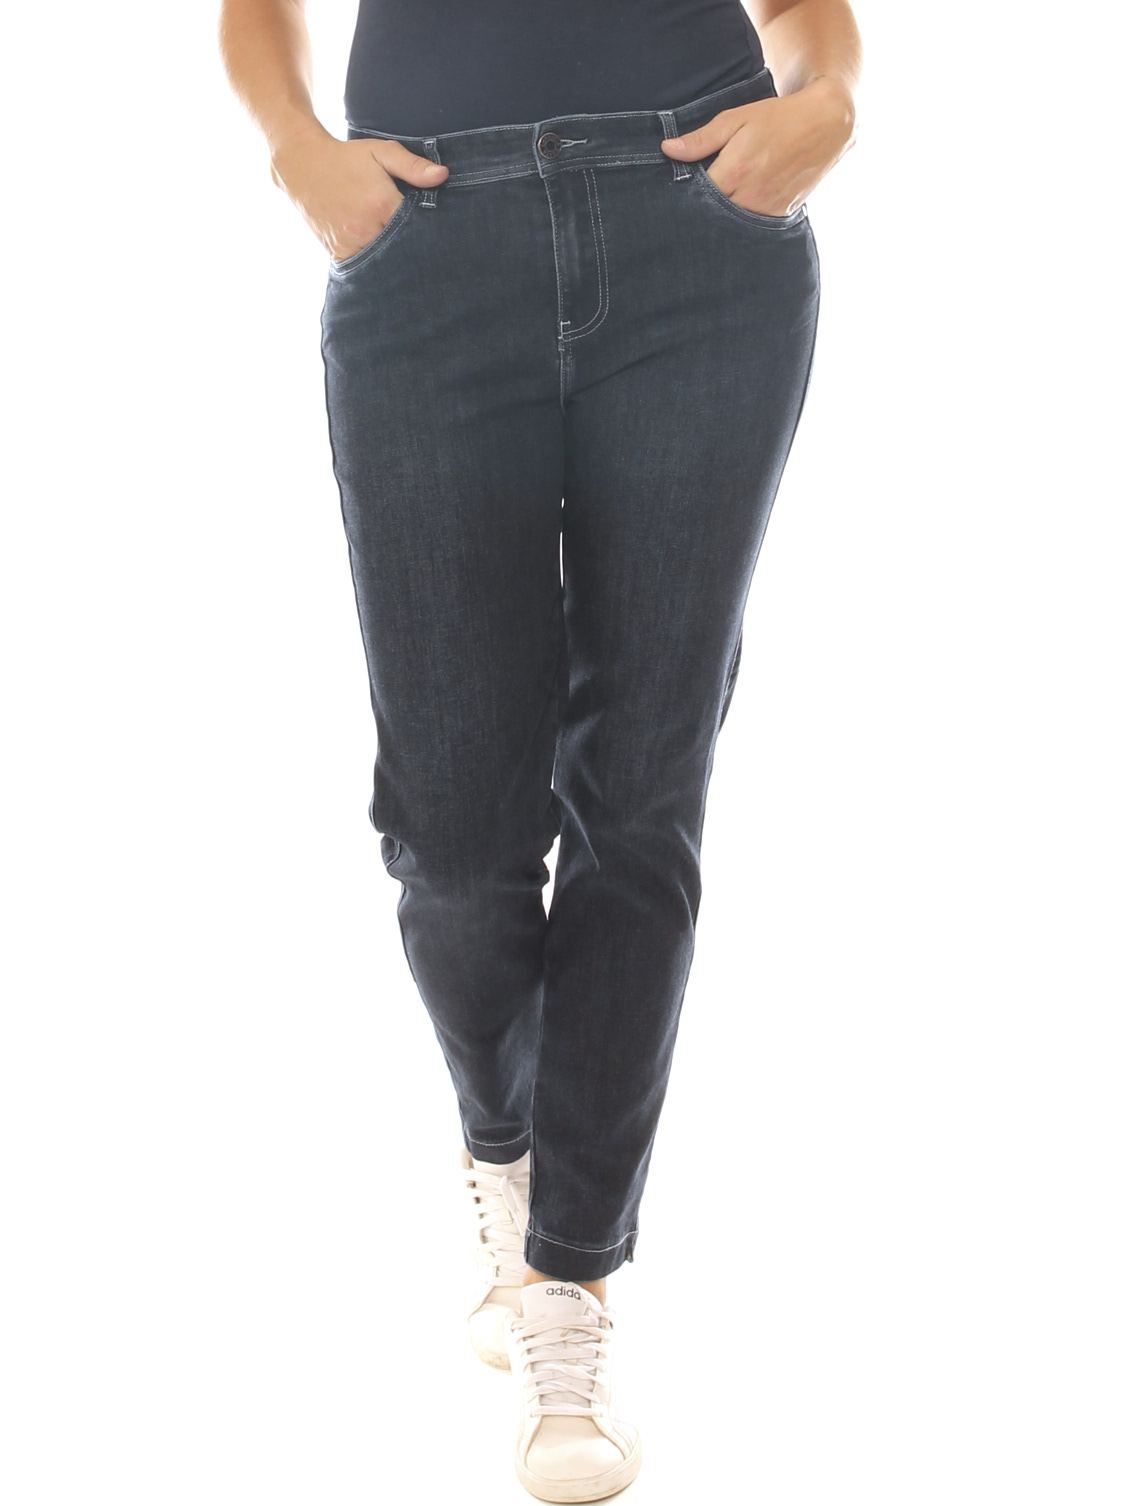 Jeans a sigaretta donna in denim stretch taglia morbida